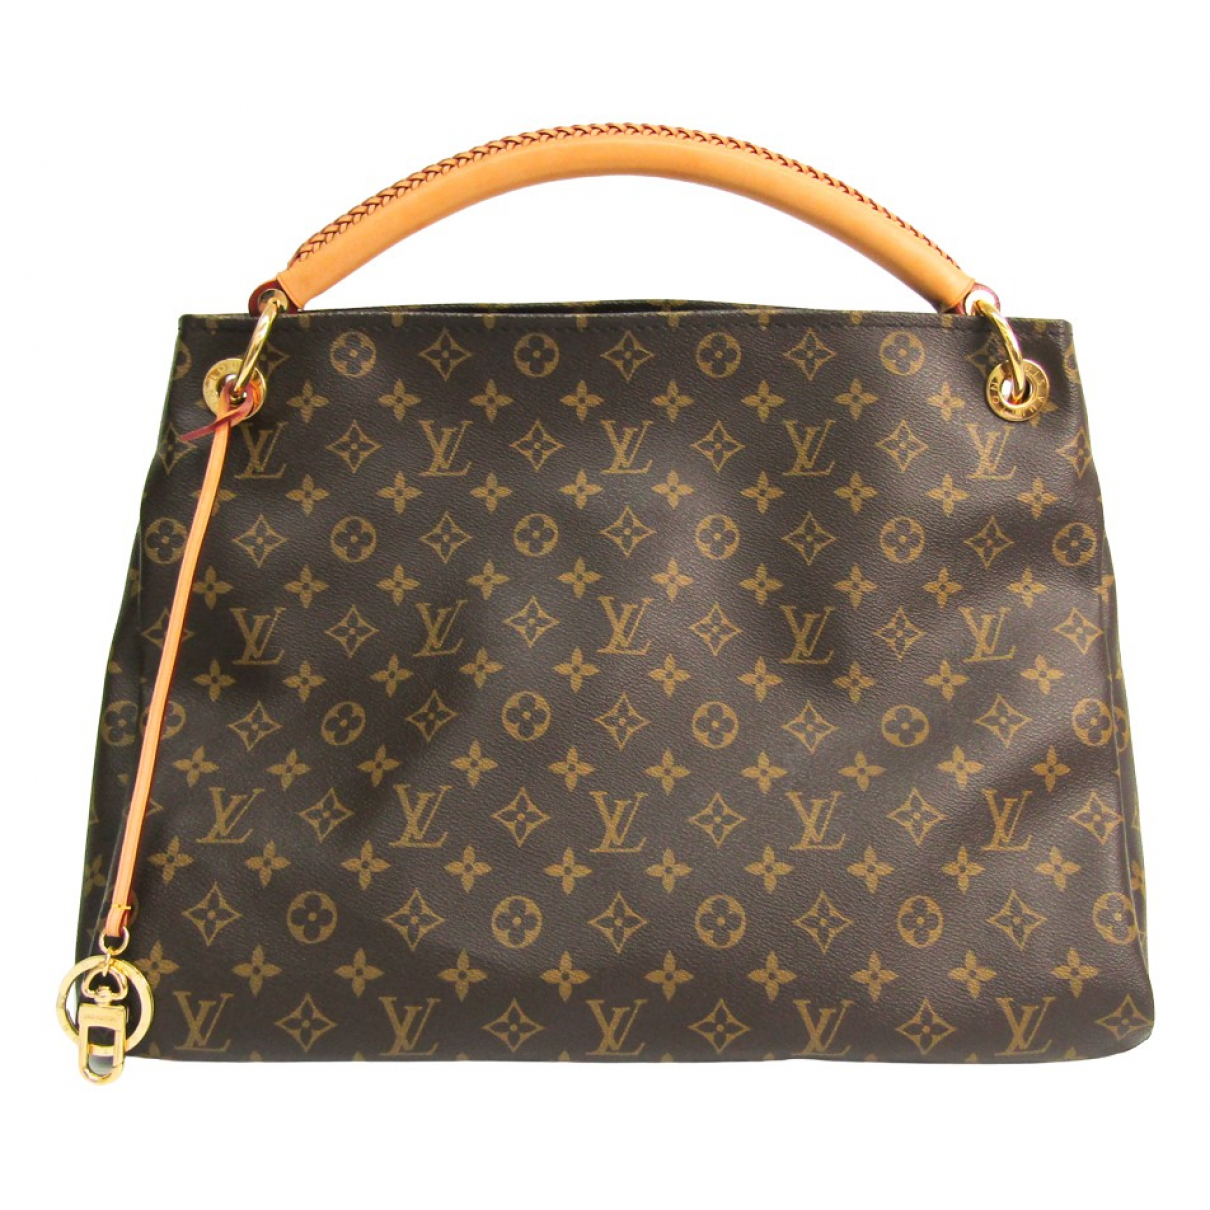 Louis Vuitton Artsy Brown Cloth handbag for Women N